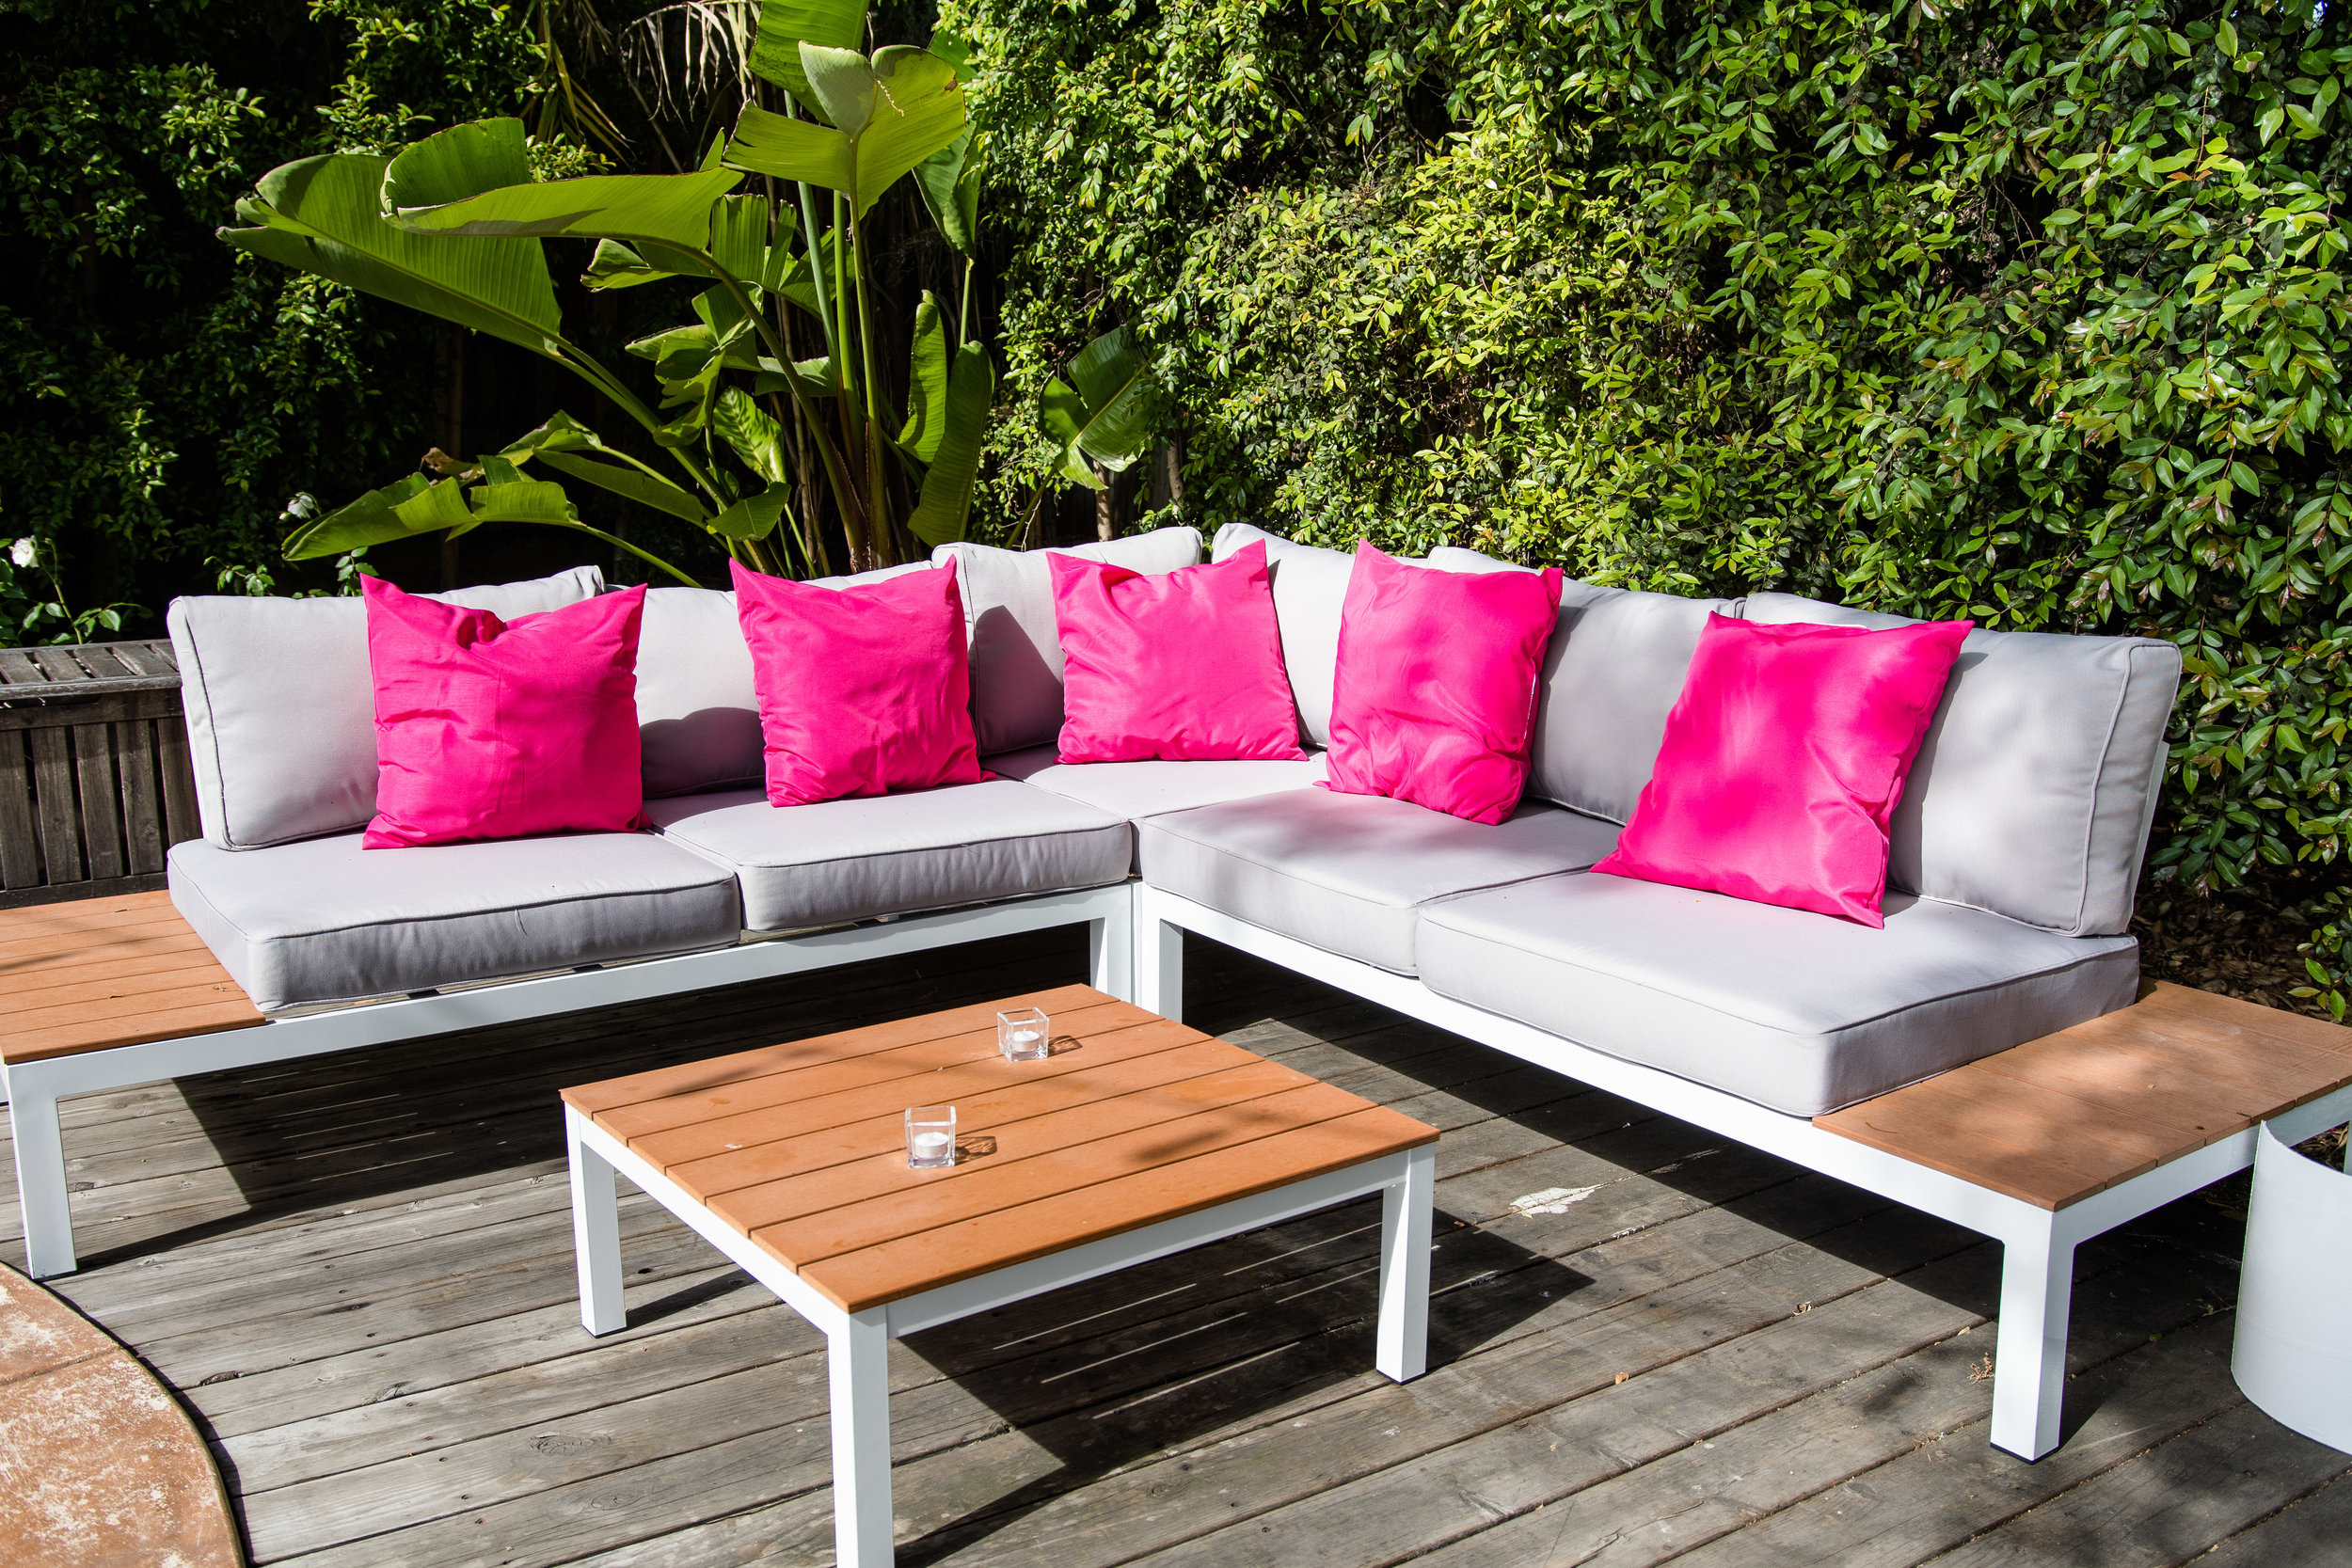 Vibrant Fiesta Backyard Wedding Reception cozy seating area with hot pink pillows.jpg